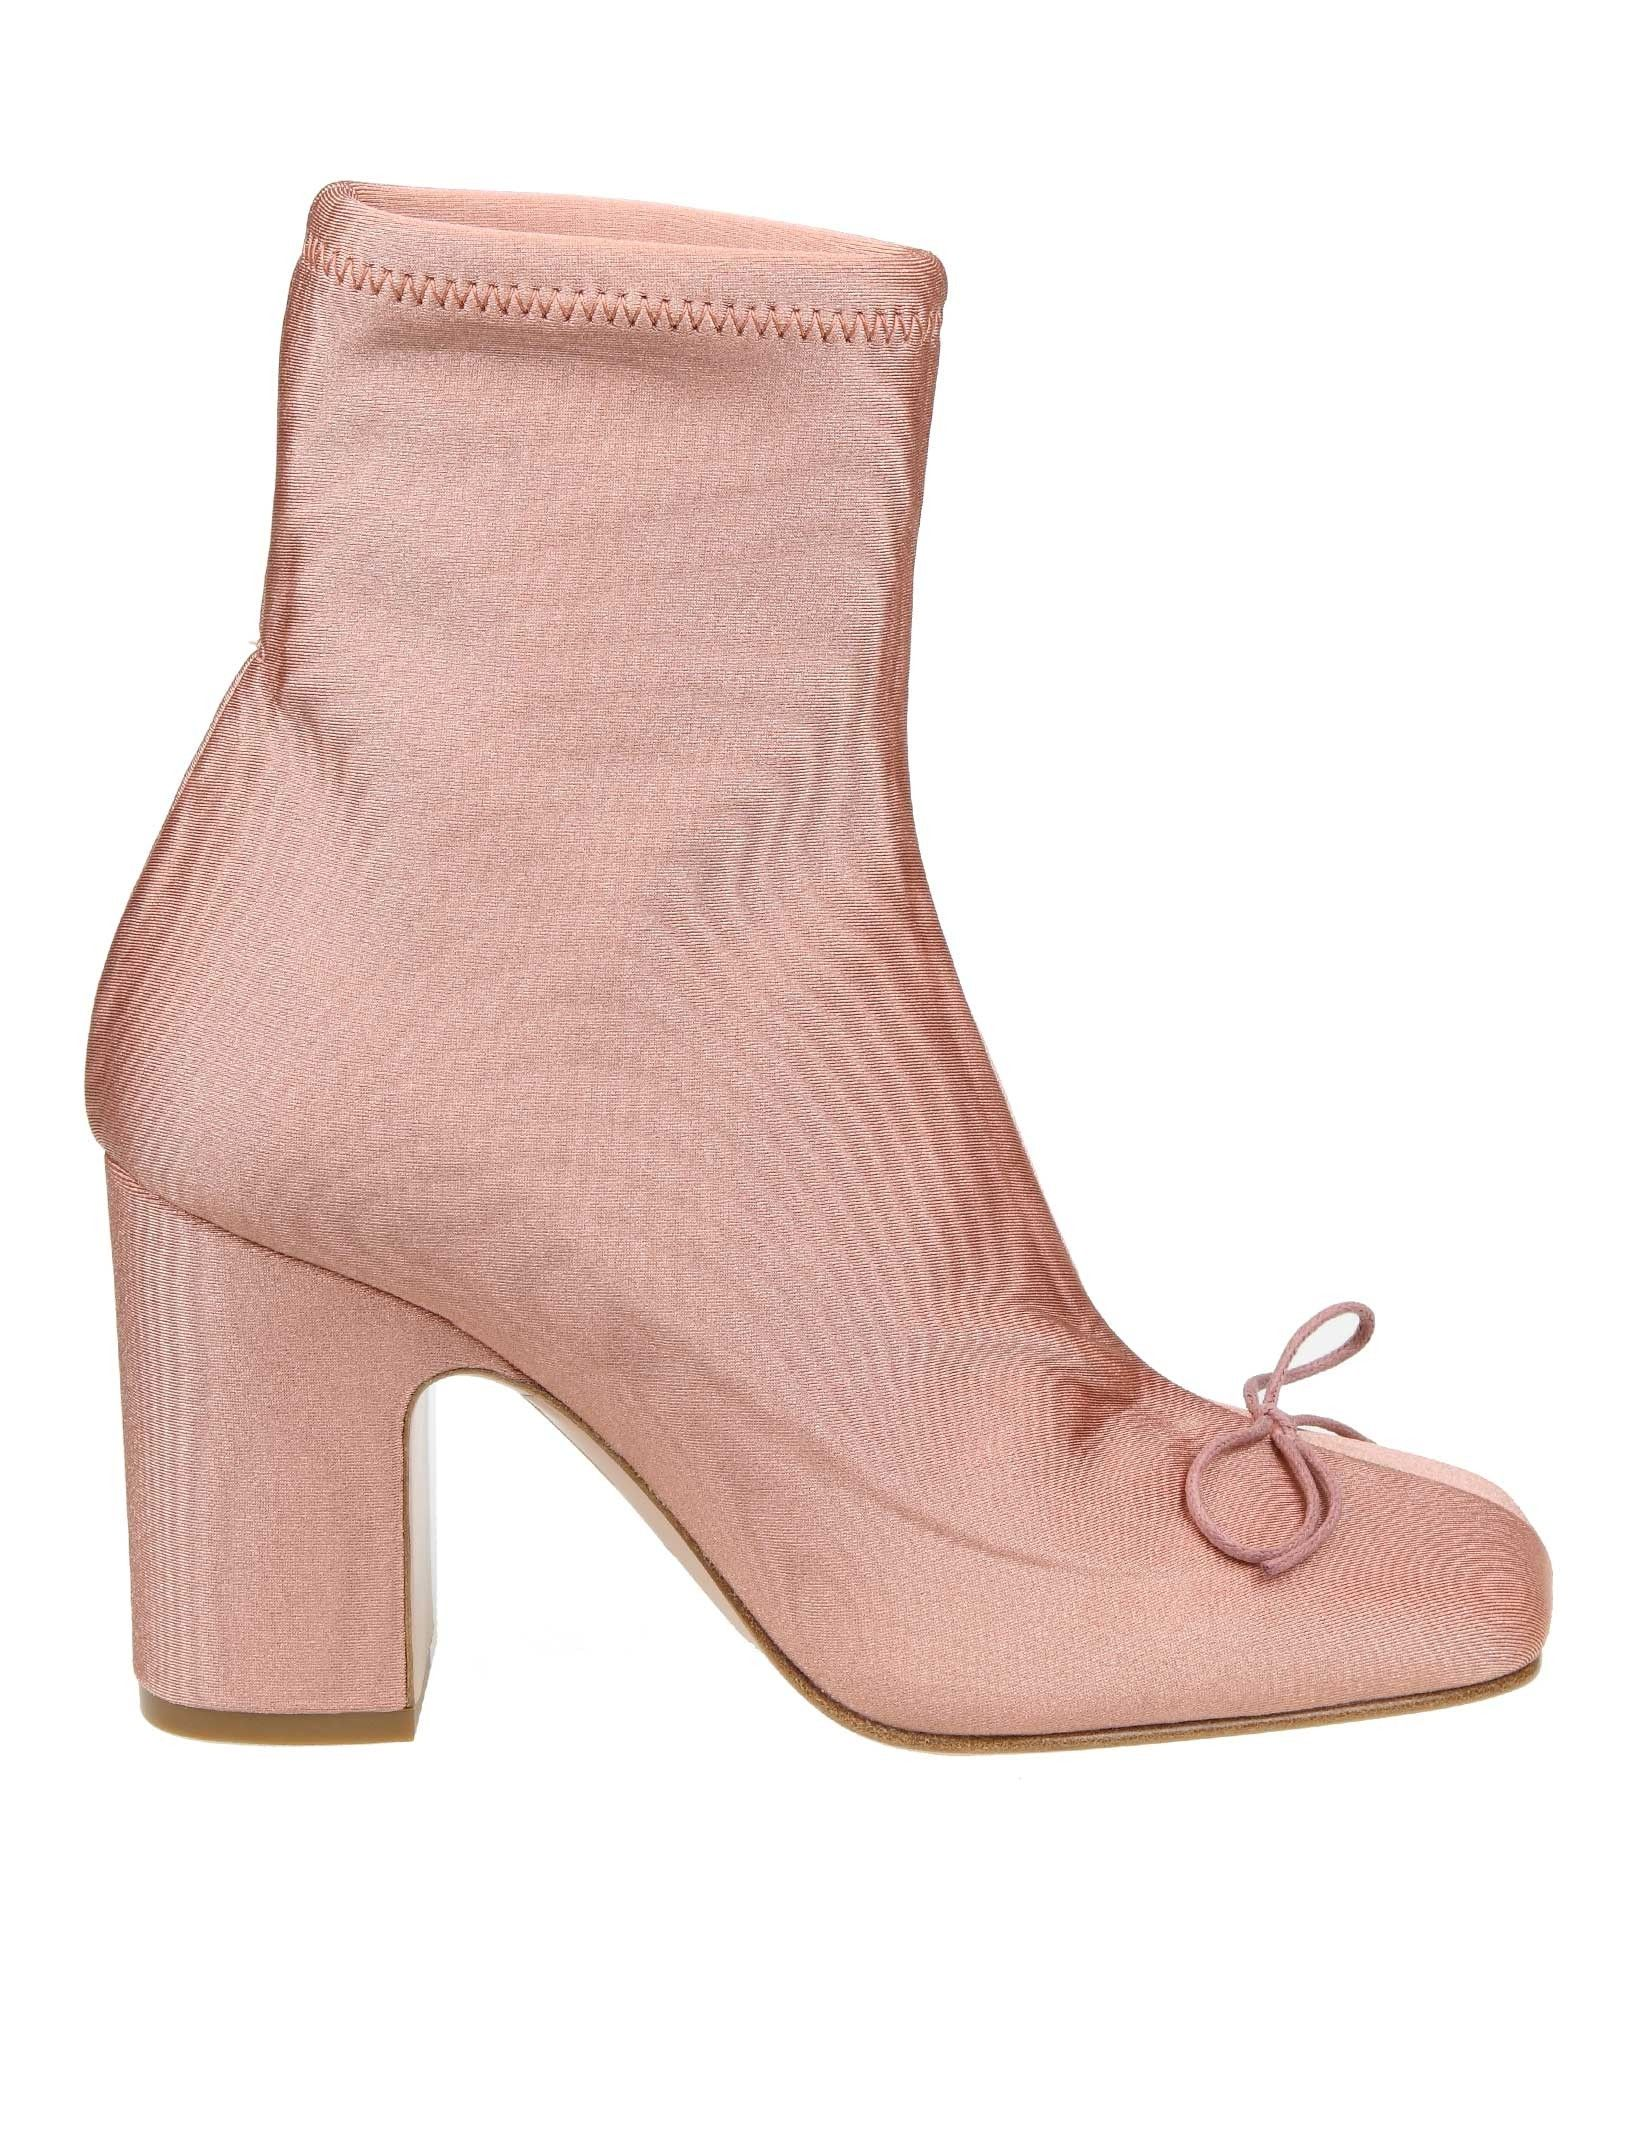 RED VALENTINO PINK FABRIC ANKLE BOOTS